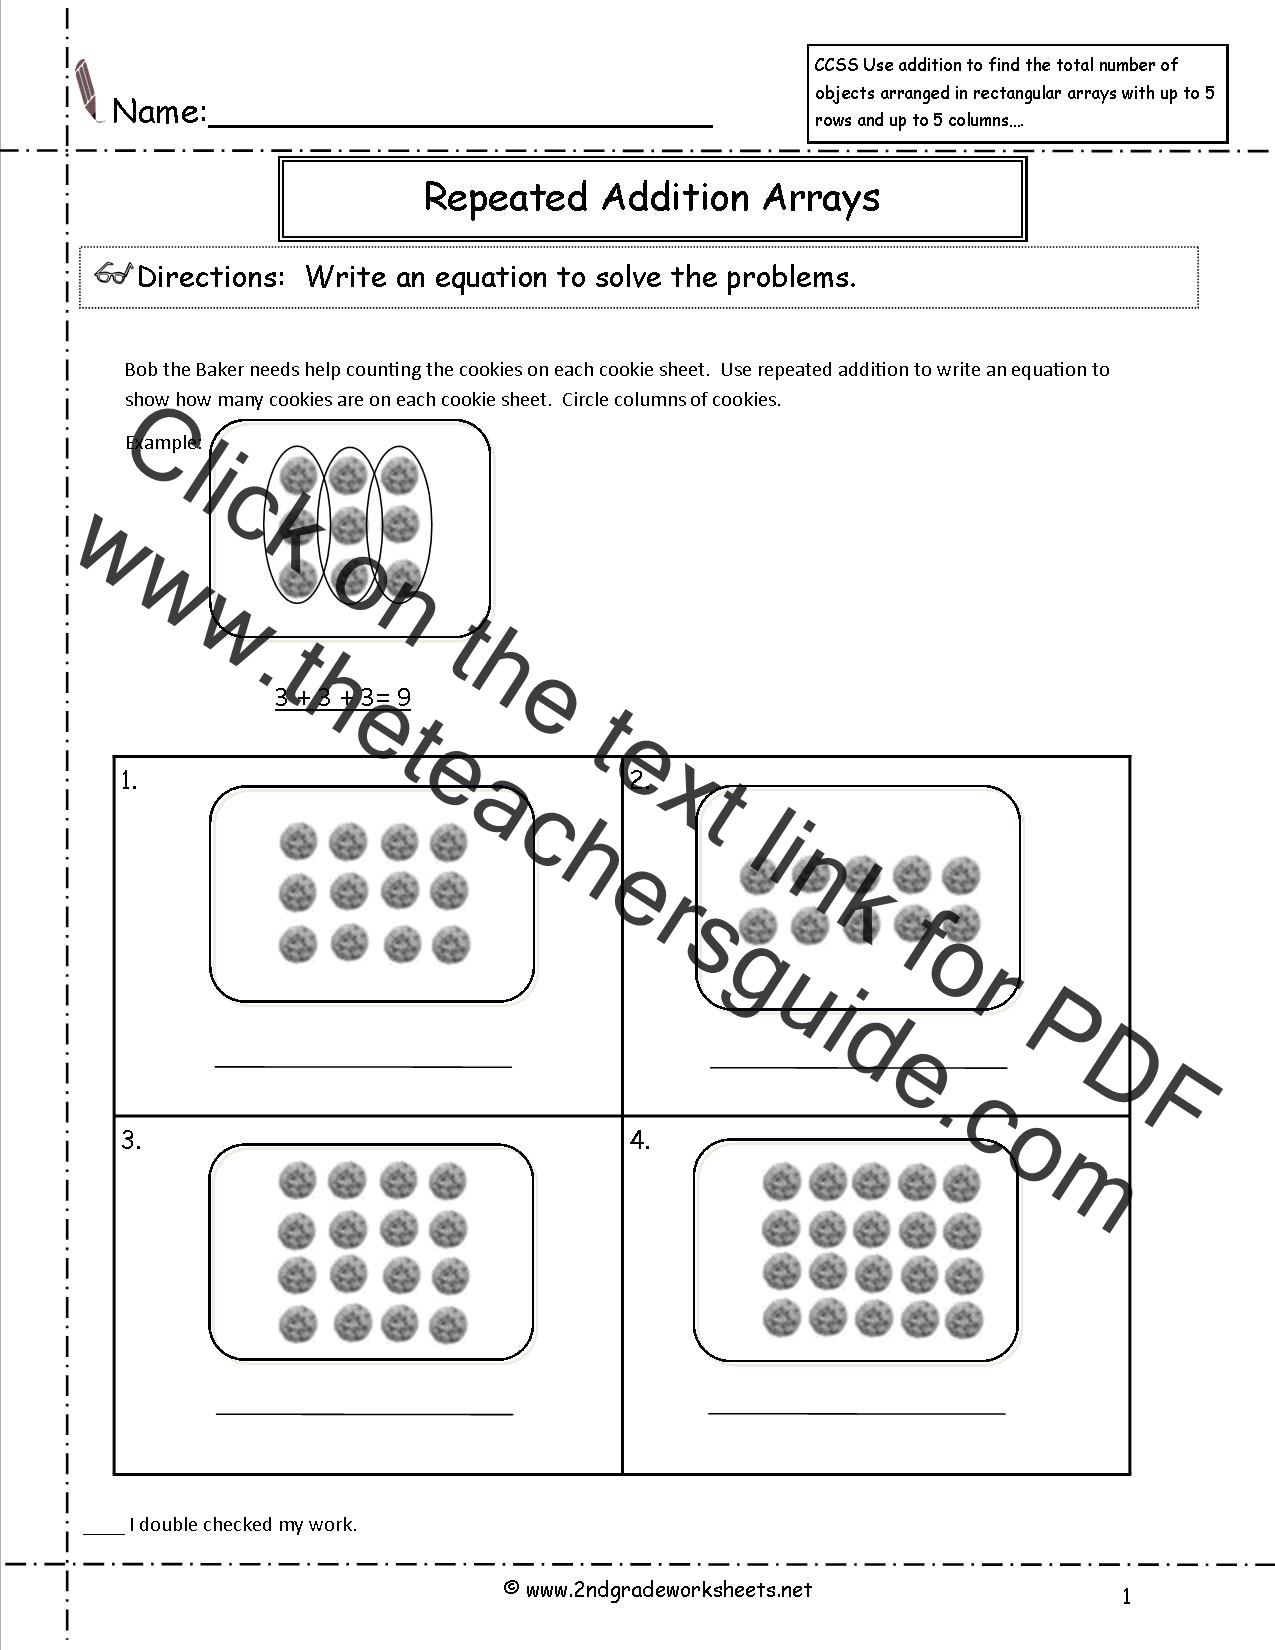 Ccss 2 Oa 4 Worksheets